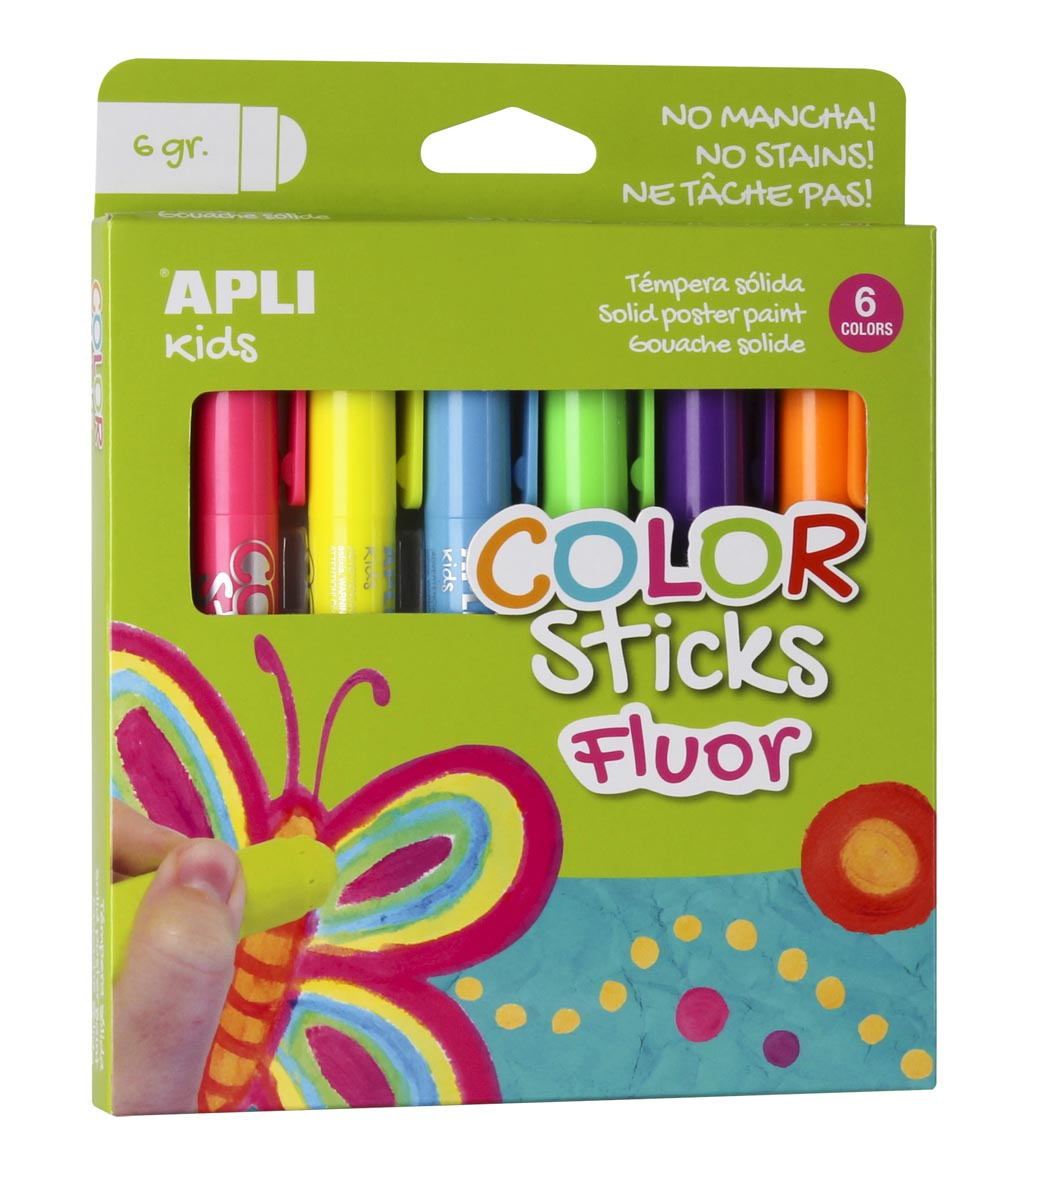 Apli Kids color sticks fluor, blister met 6 stuks